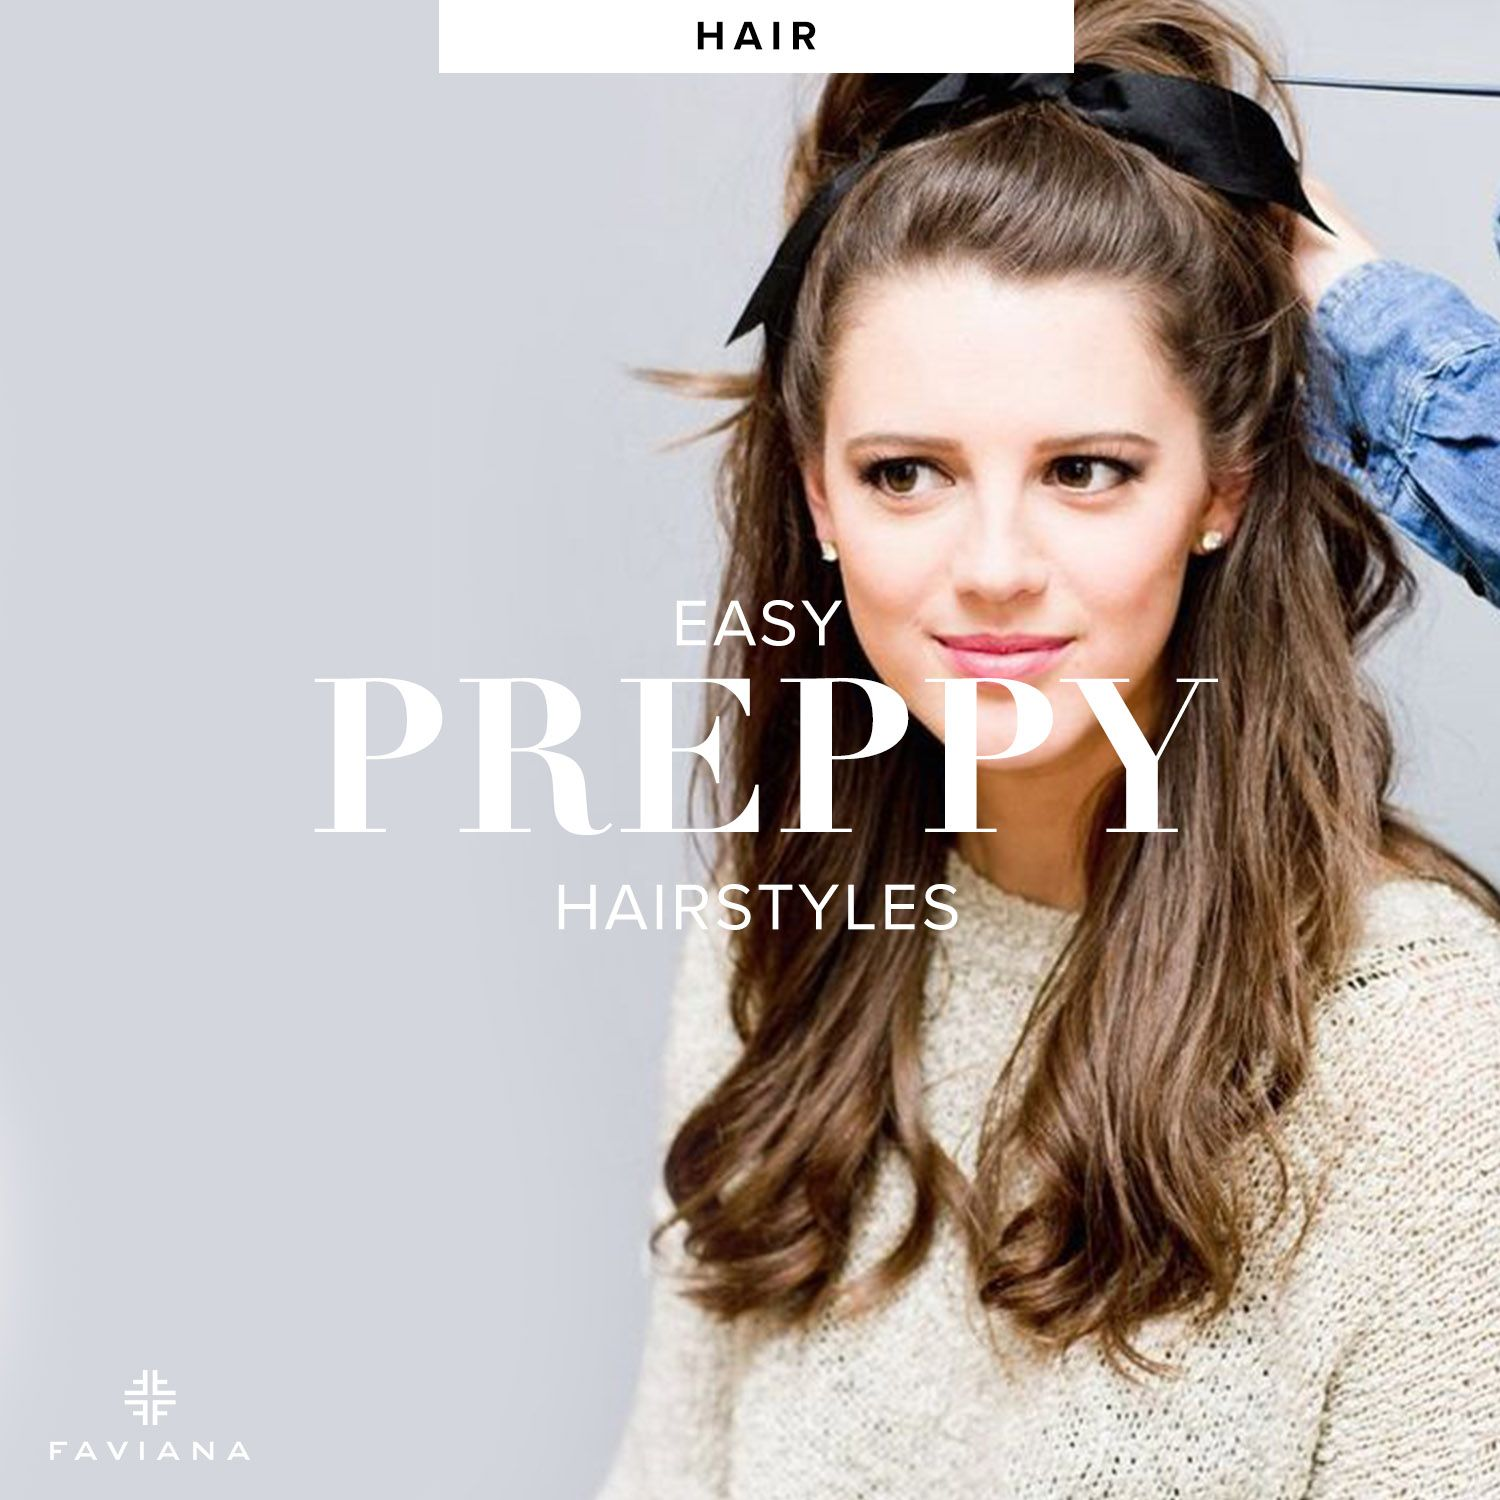 Easy Preppy Hairstyles Preppy Hairstyles Hair Styles Chic Hairstyles